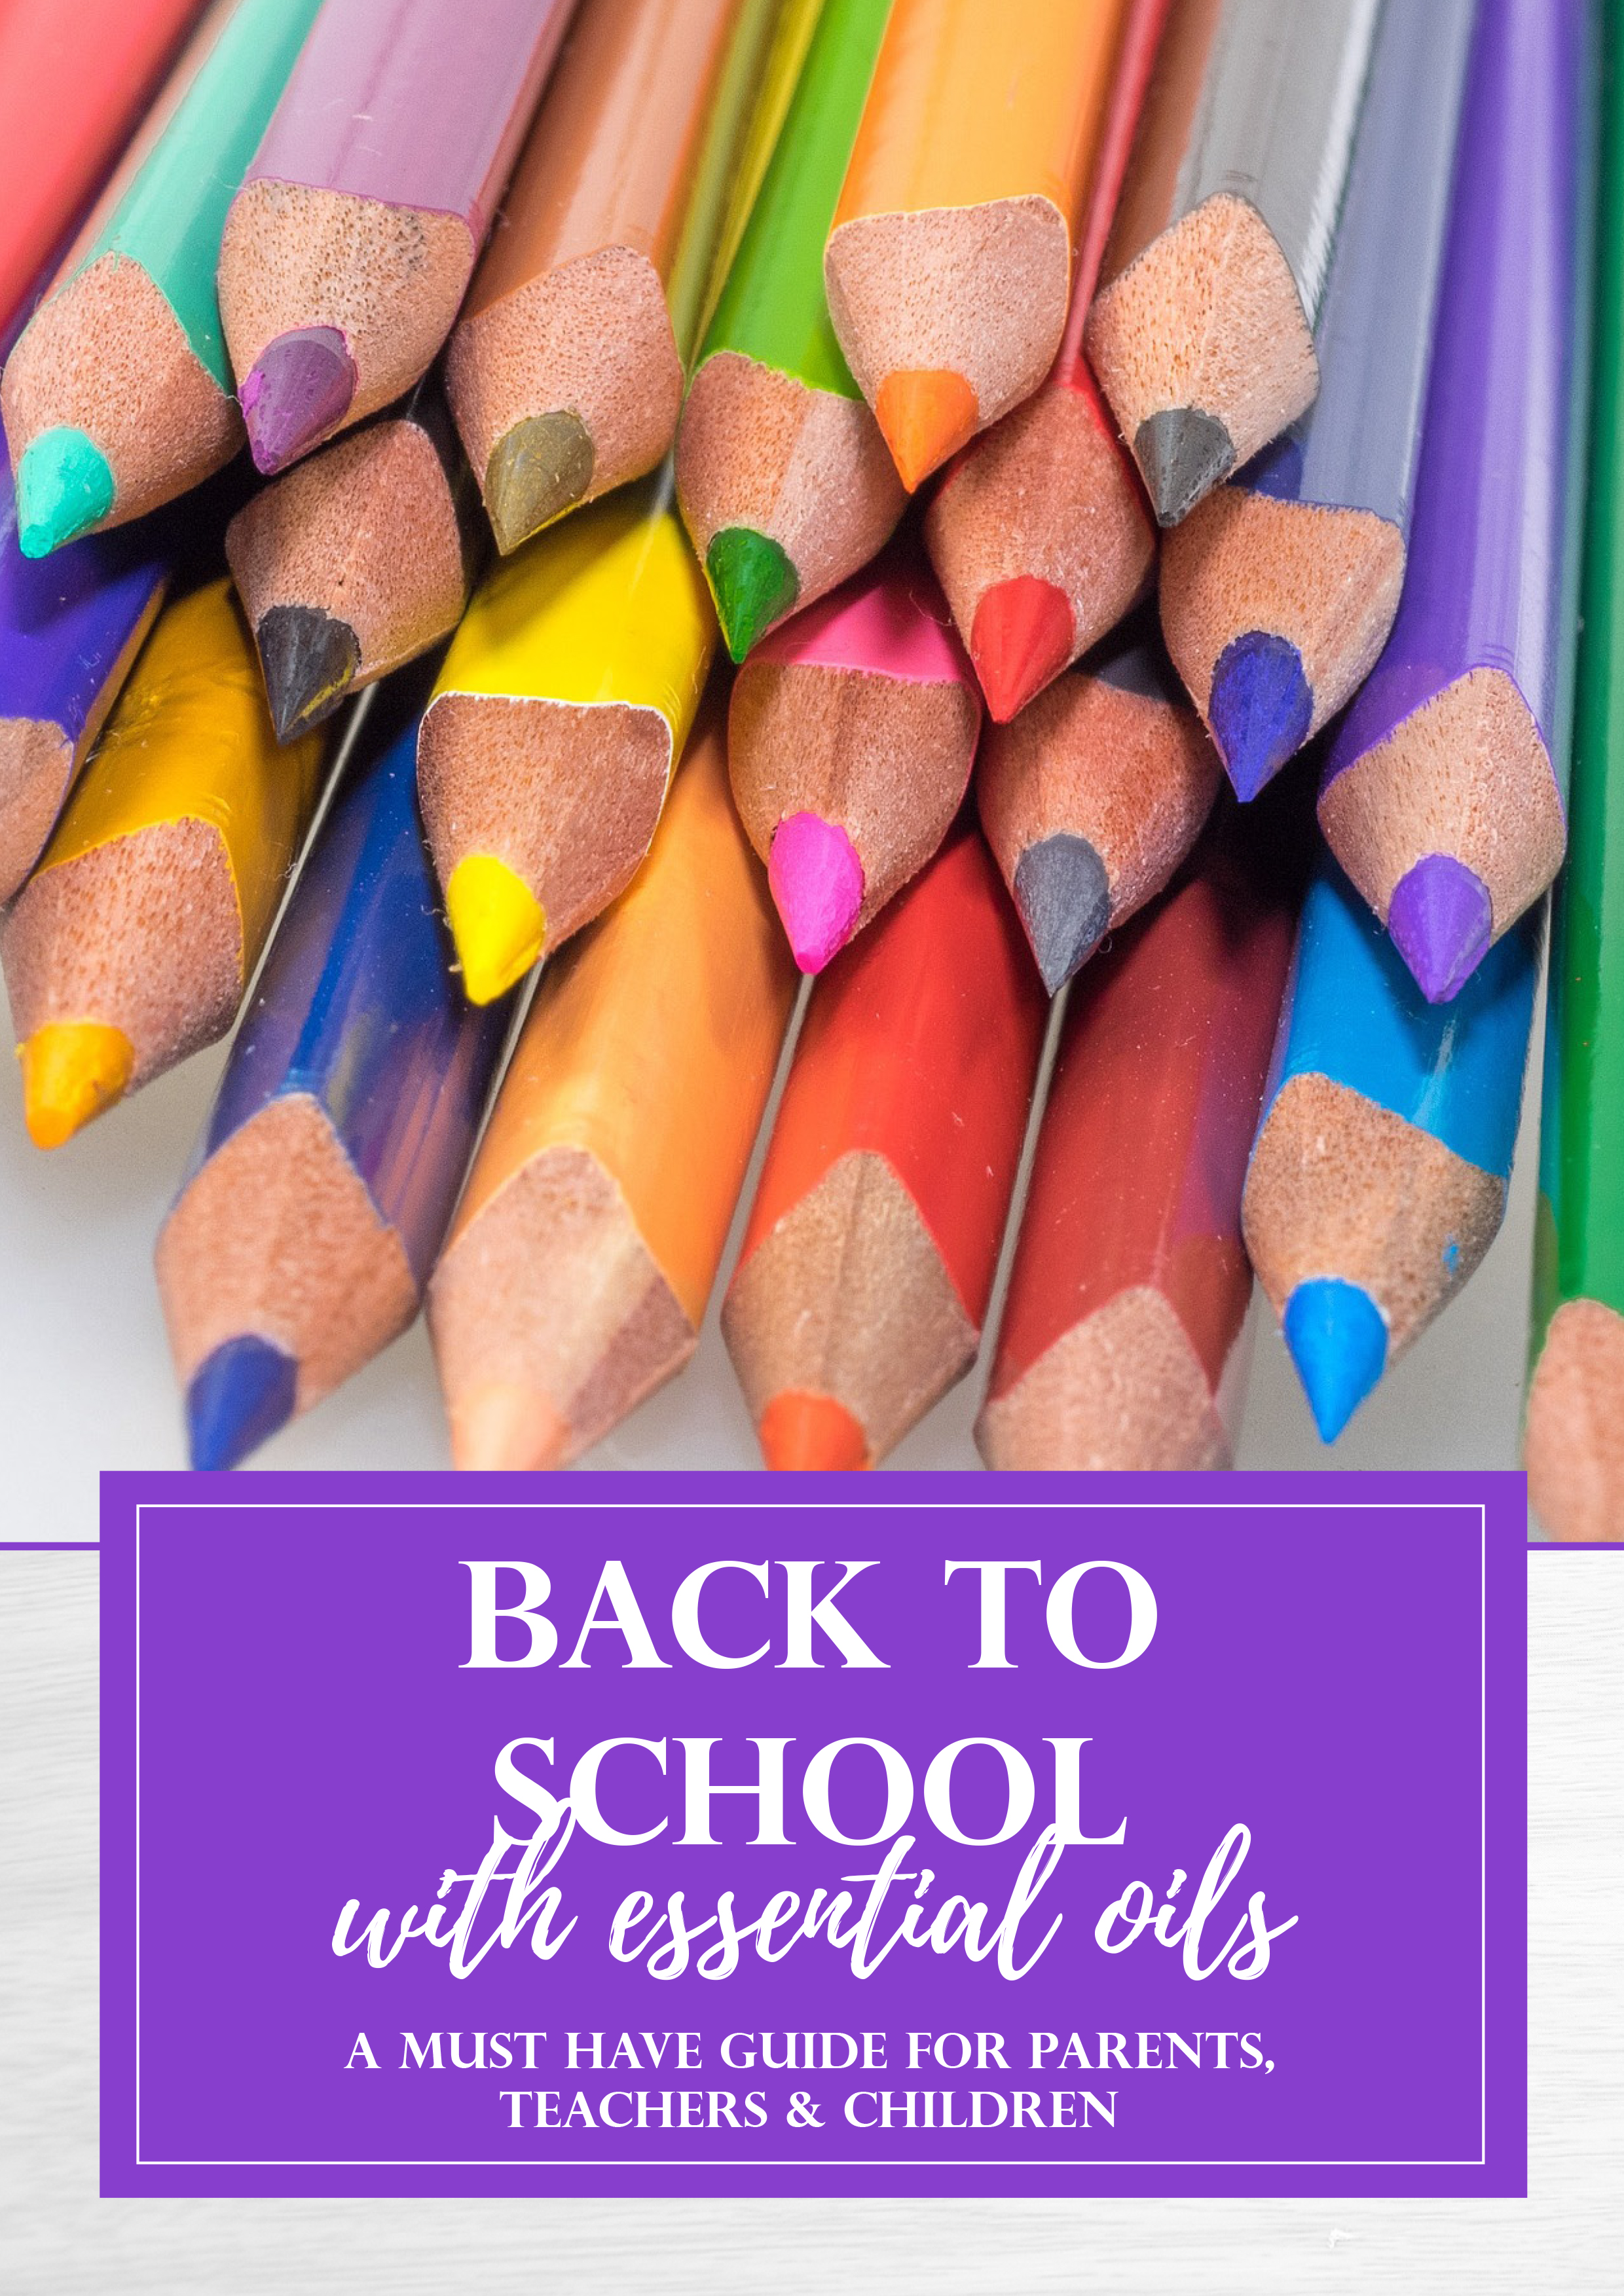 back to school with essential oils e-guide_web-1.jpg